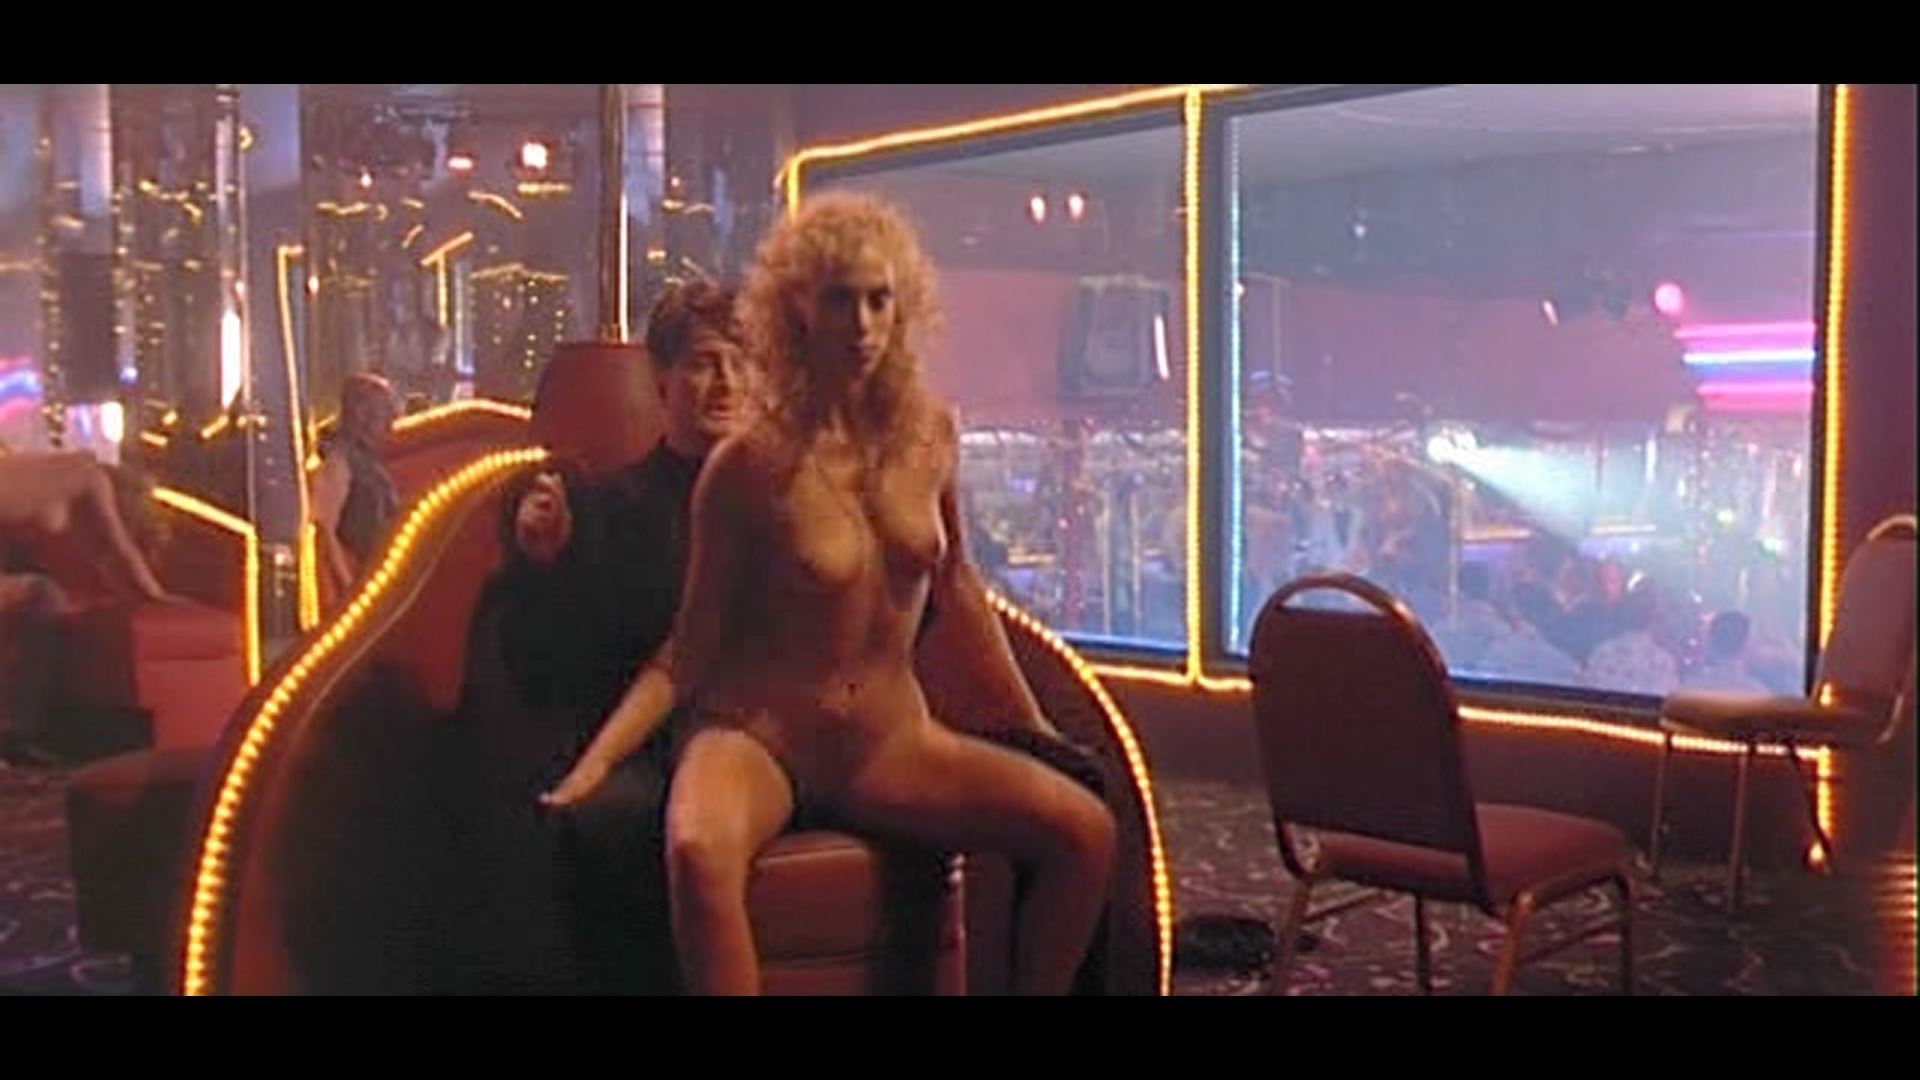 Are lap showgirls movie nude dance quite good variant